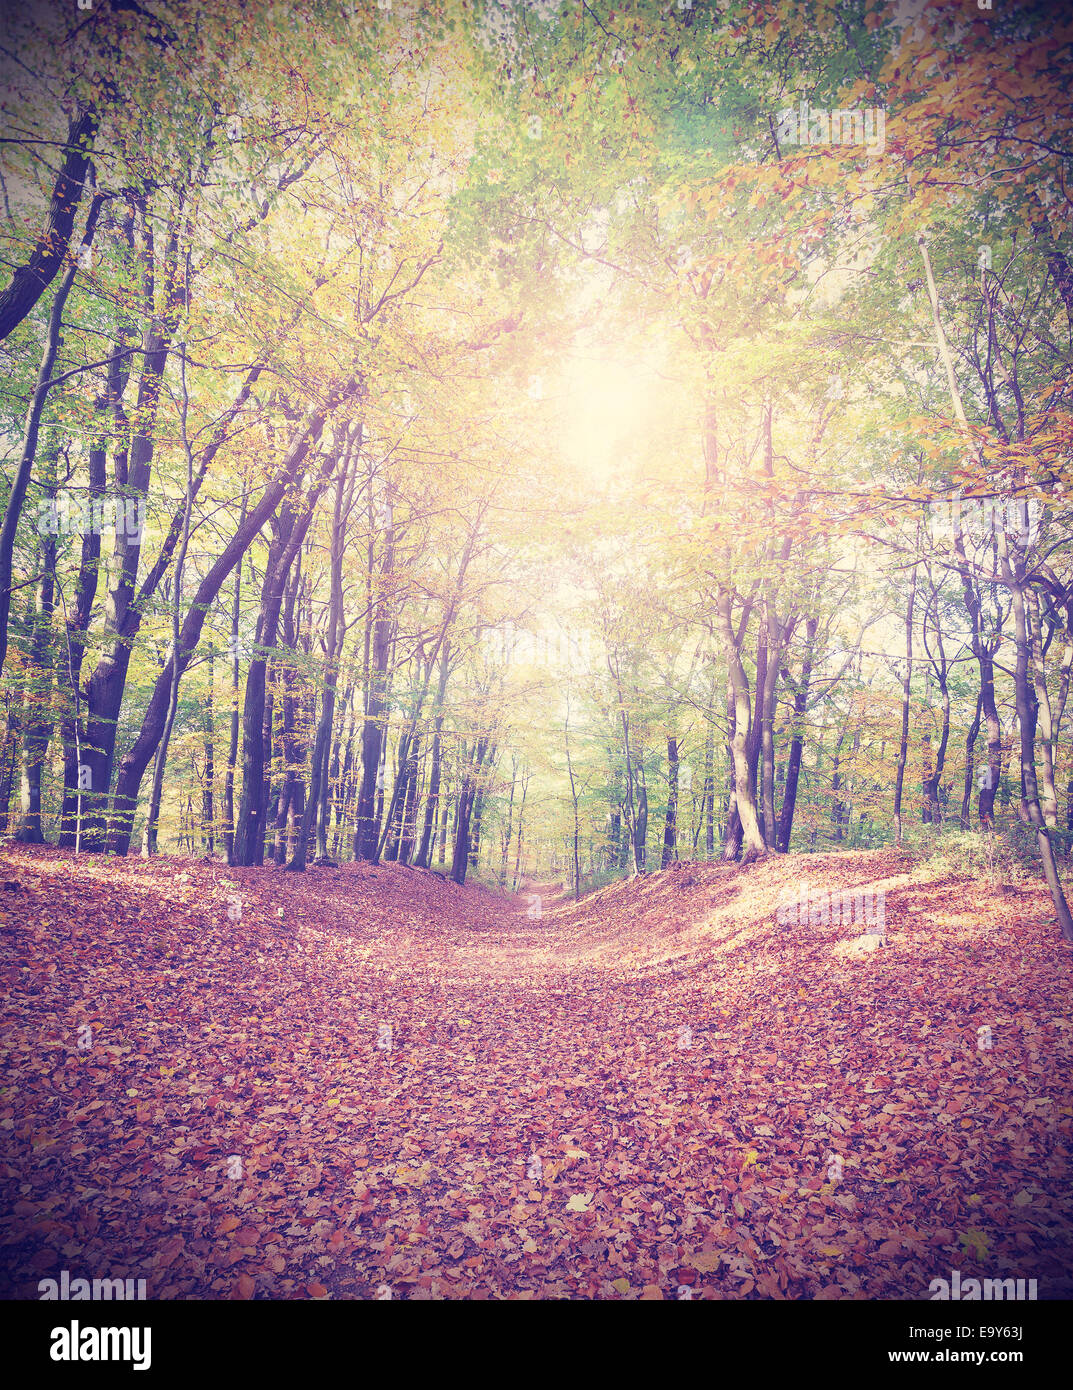 Retro filtered picture of a an autumnal forest. Stock Photo